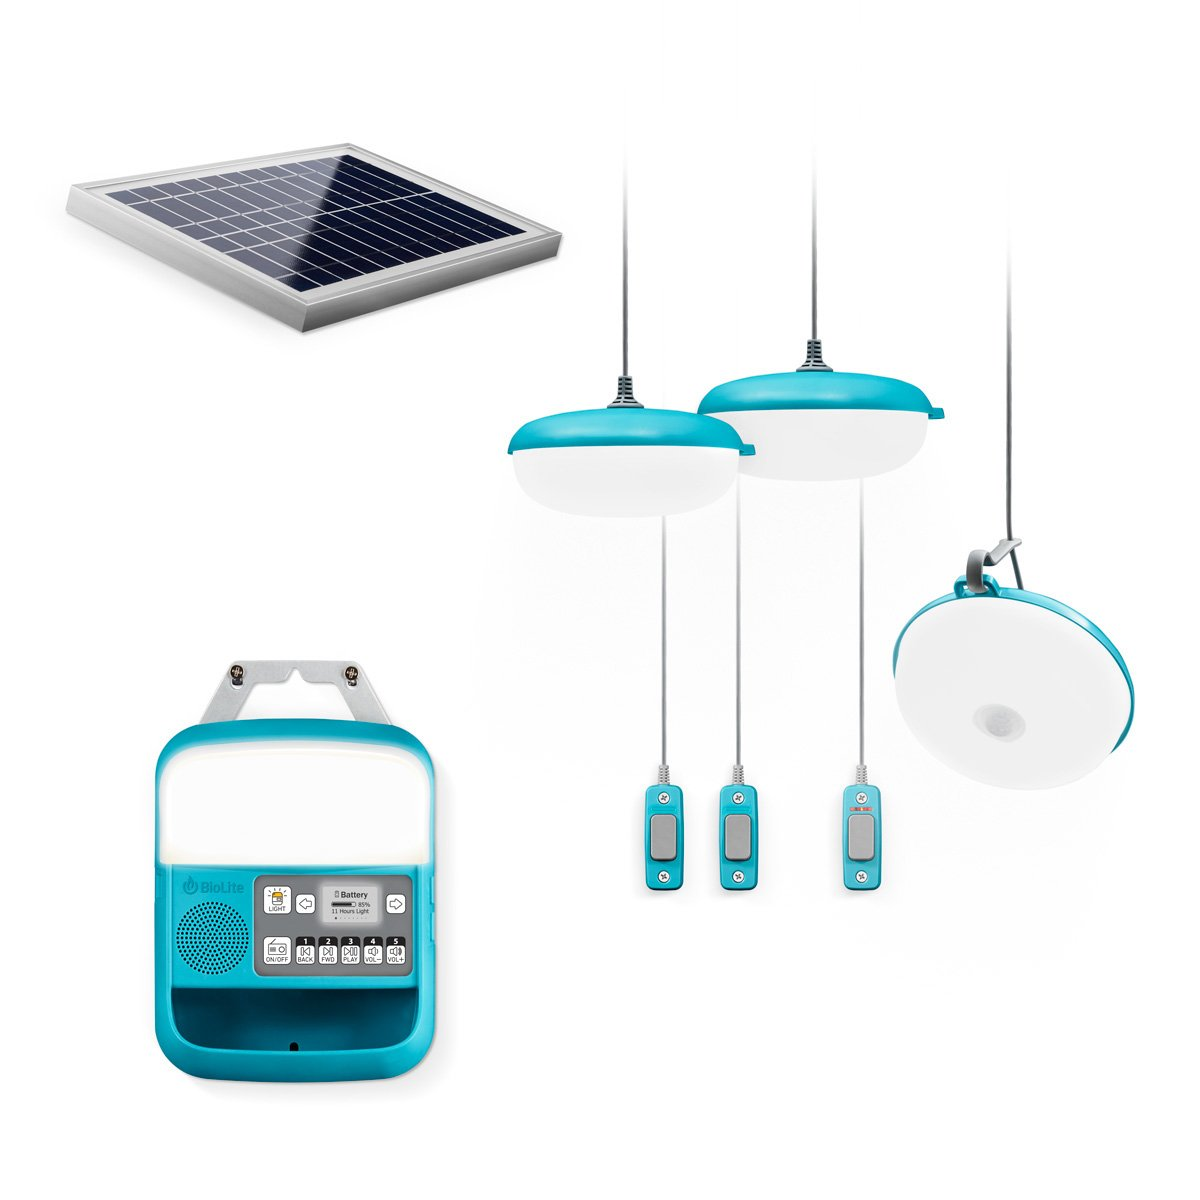 BioLite SolarHome 620 Portable Off-Grid Solar Lighting System by BioLite